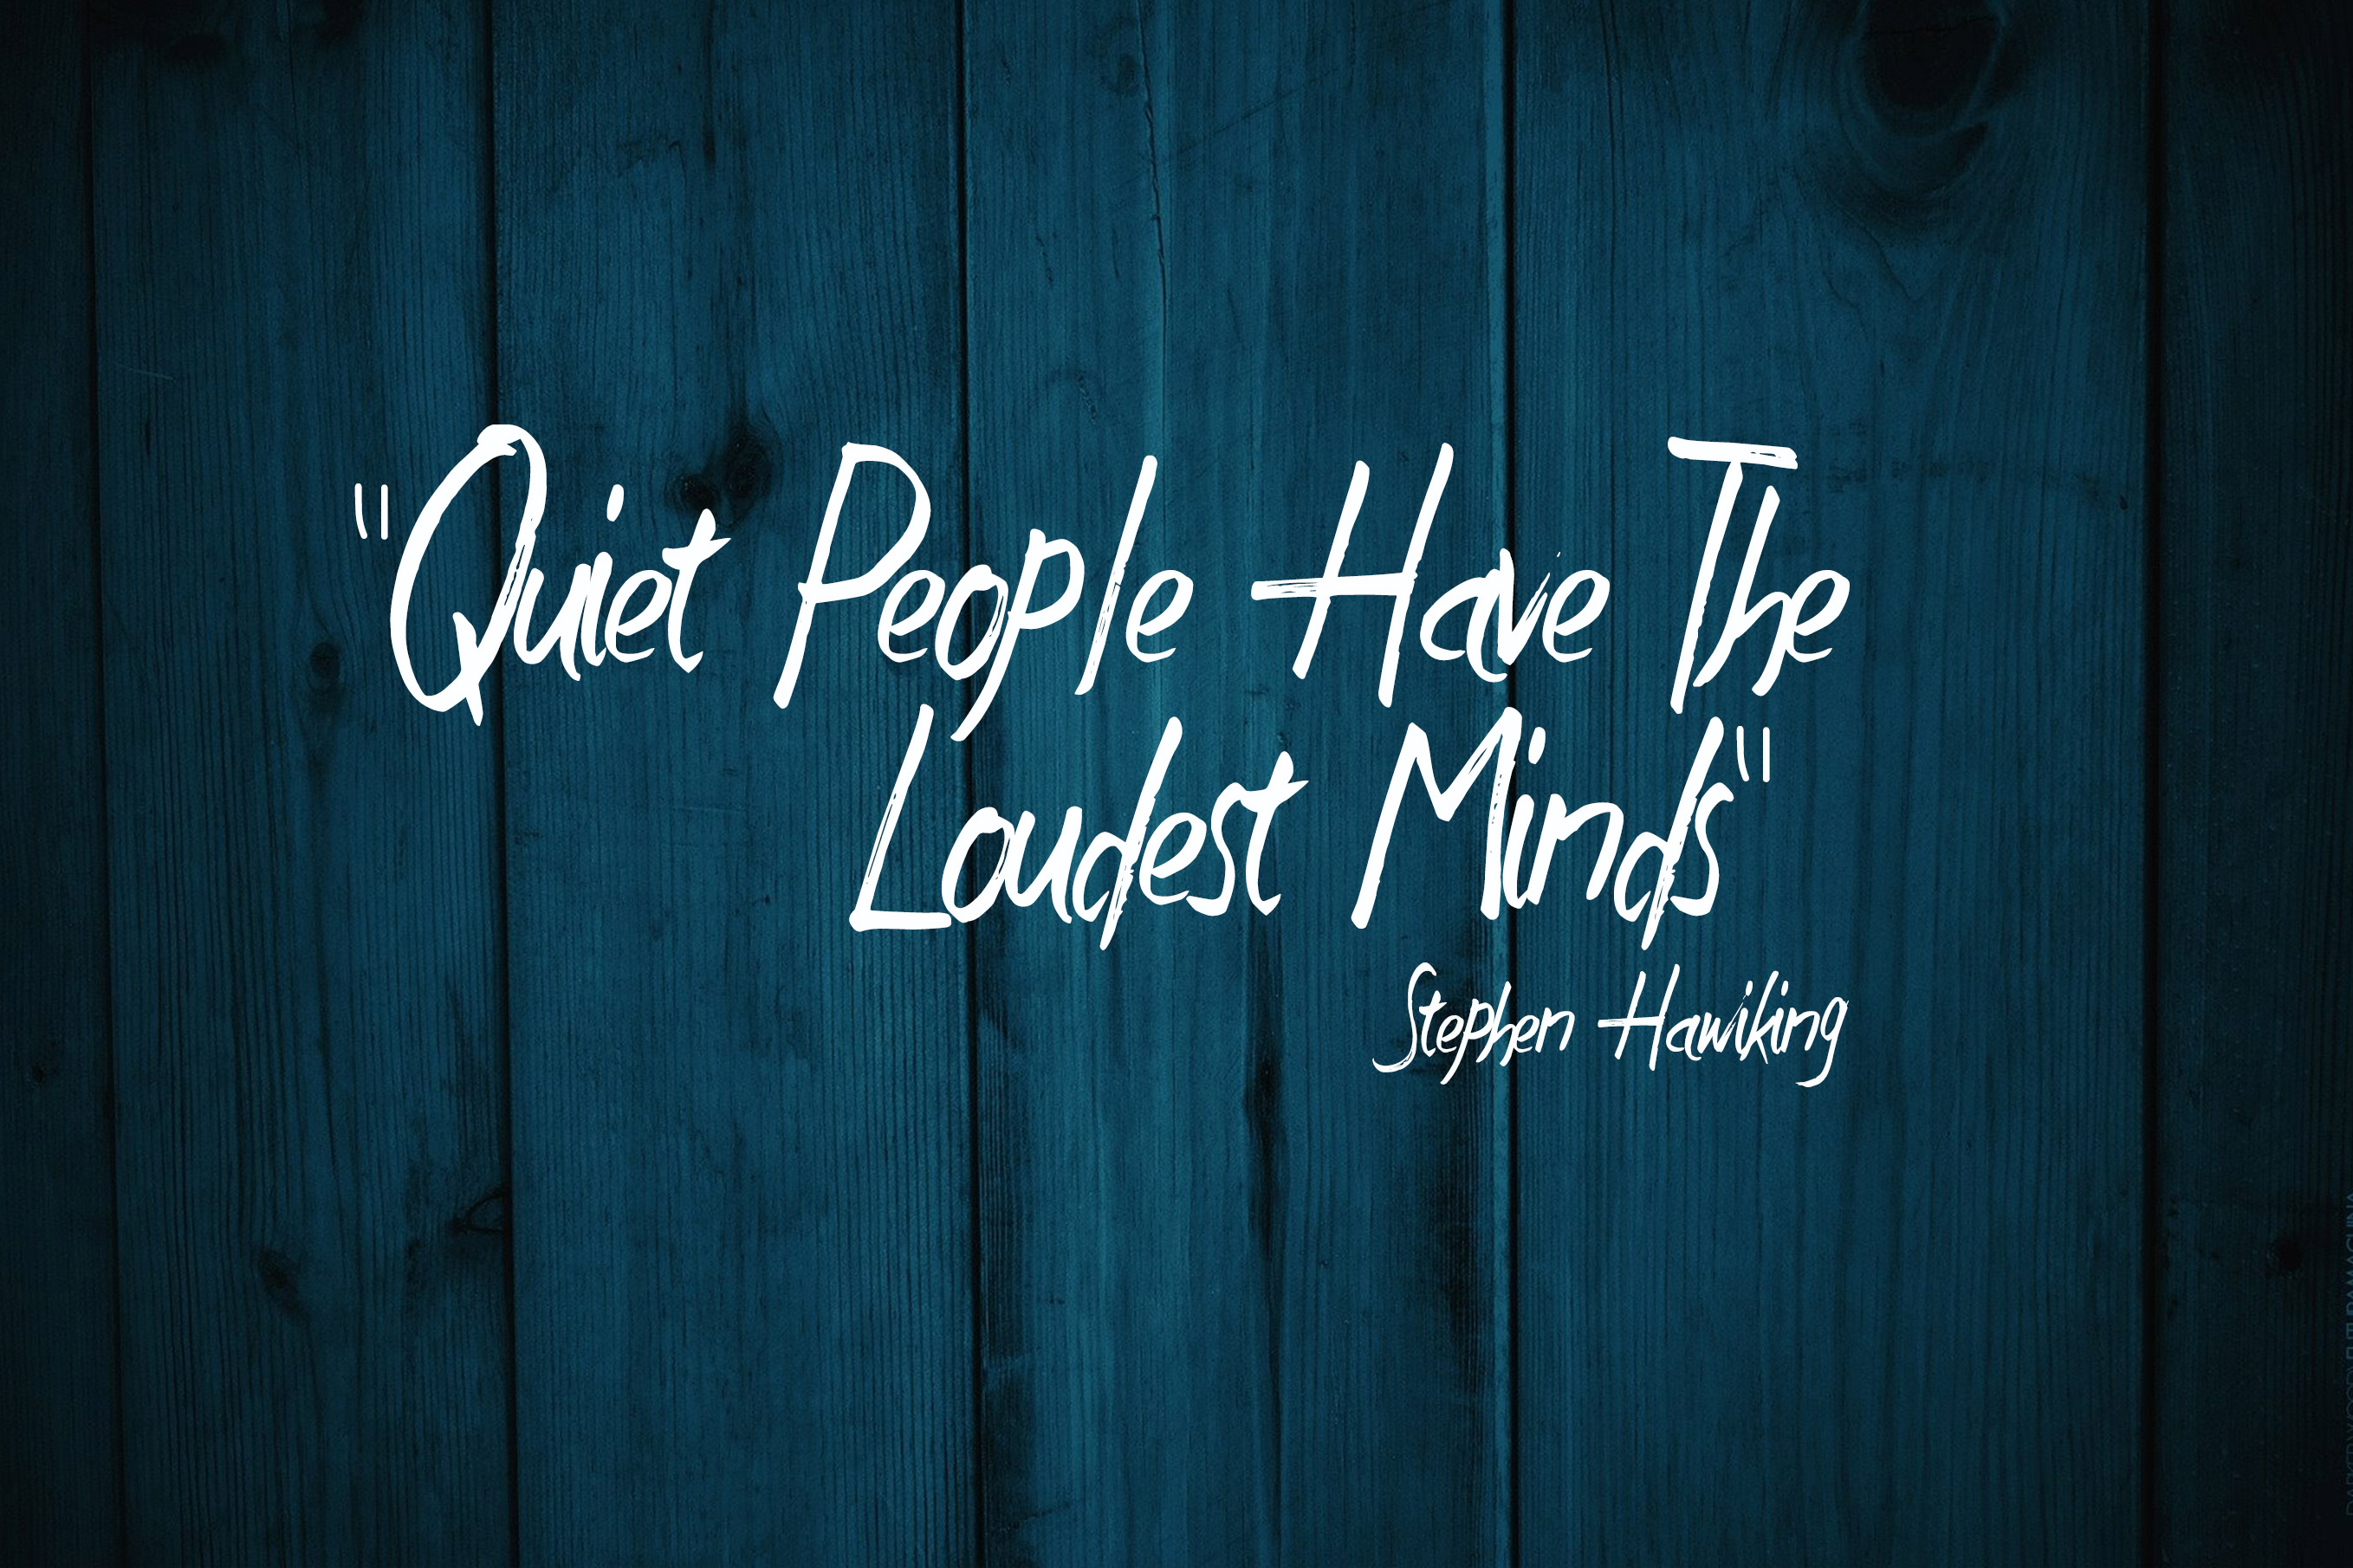 Facebook Quotes And Sayings: Introvert Quotes And Sayings Facebook. QuotesGram